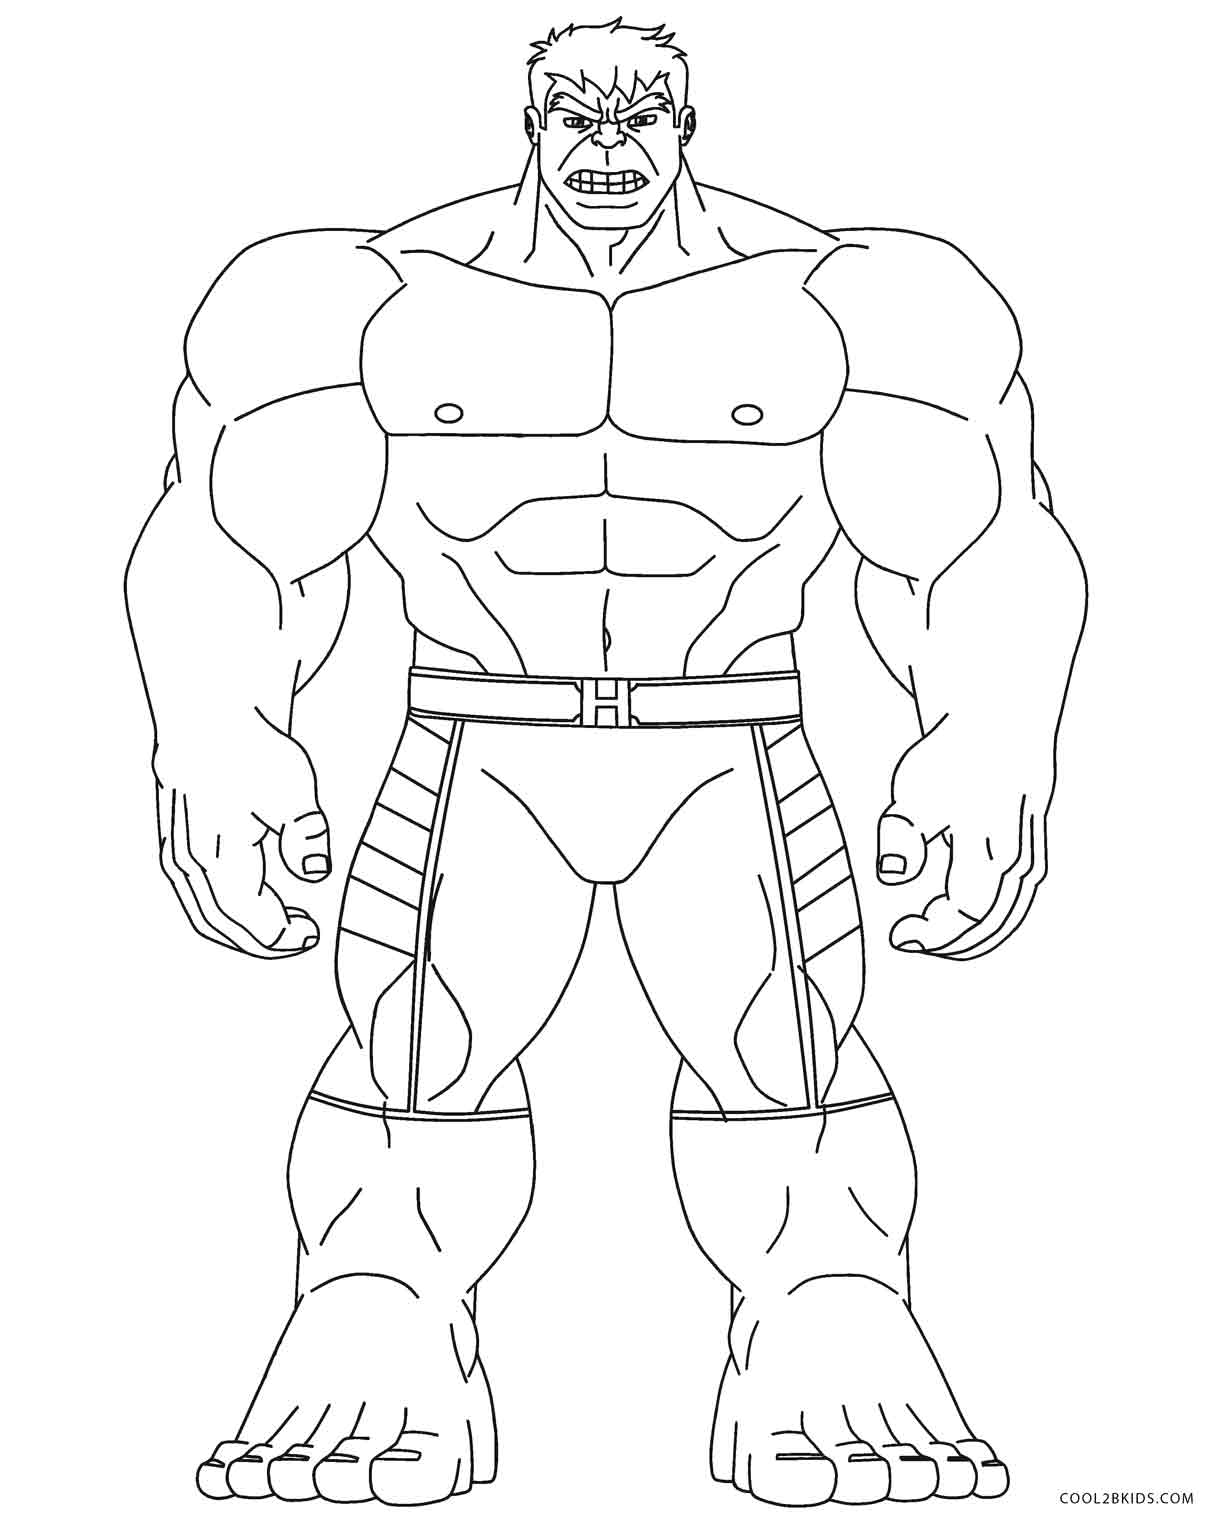 hulk coloring pictures 12 hulk coloring pages for kids print color craft coloring hulk pictures